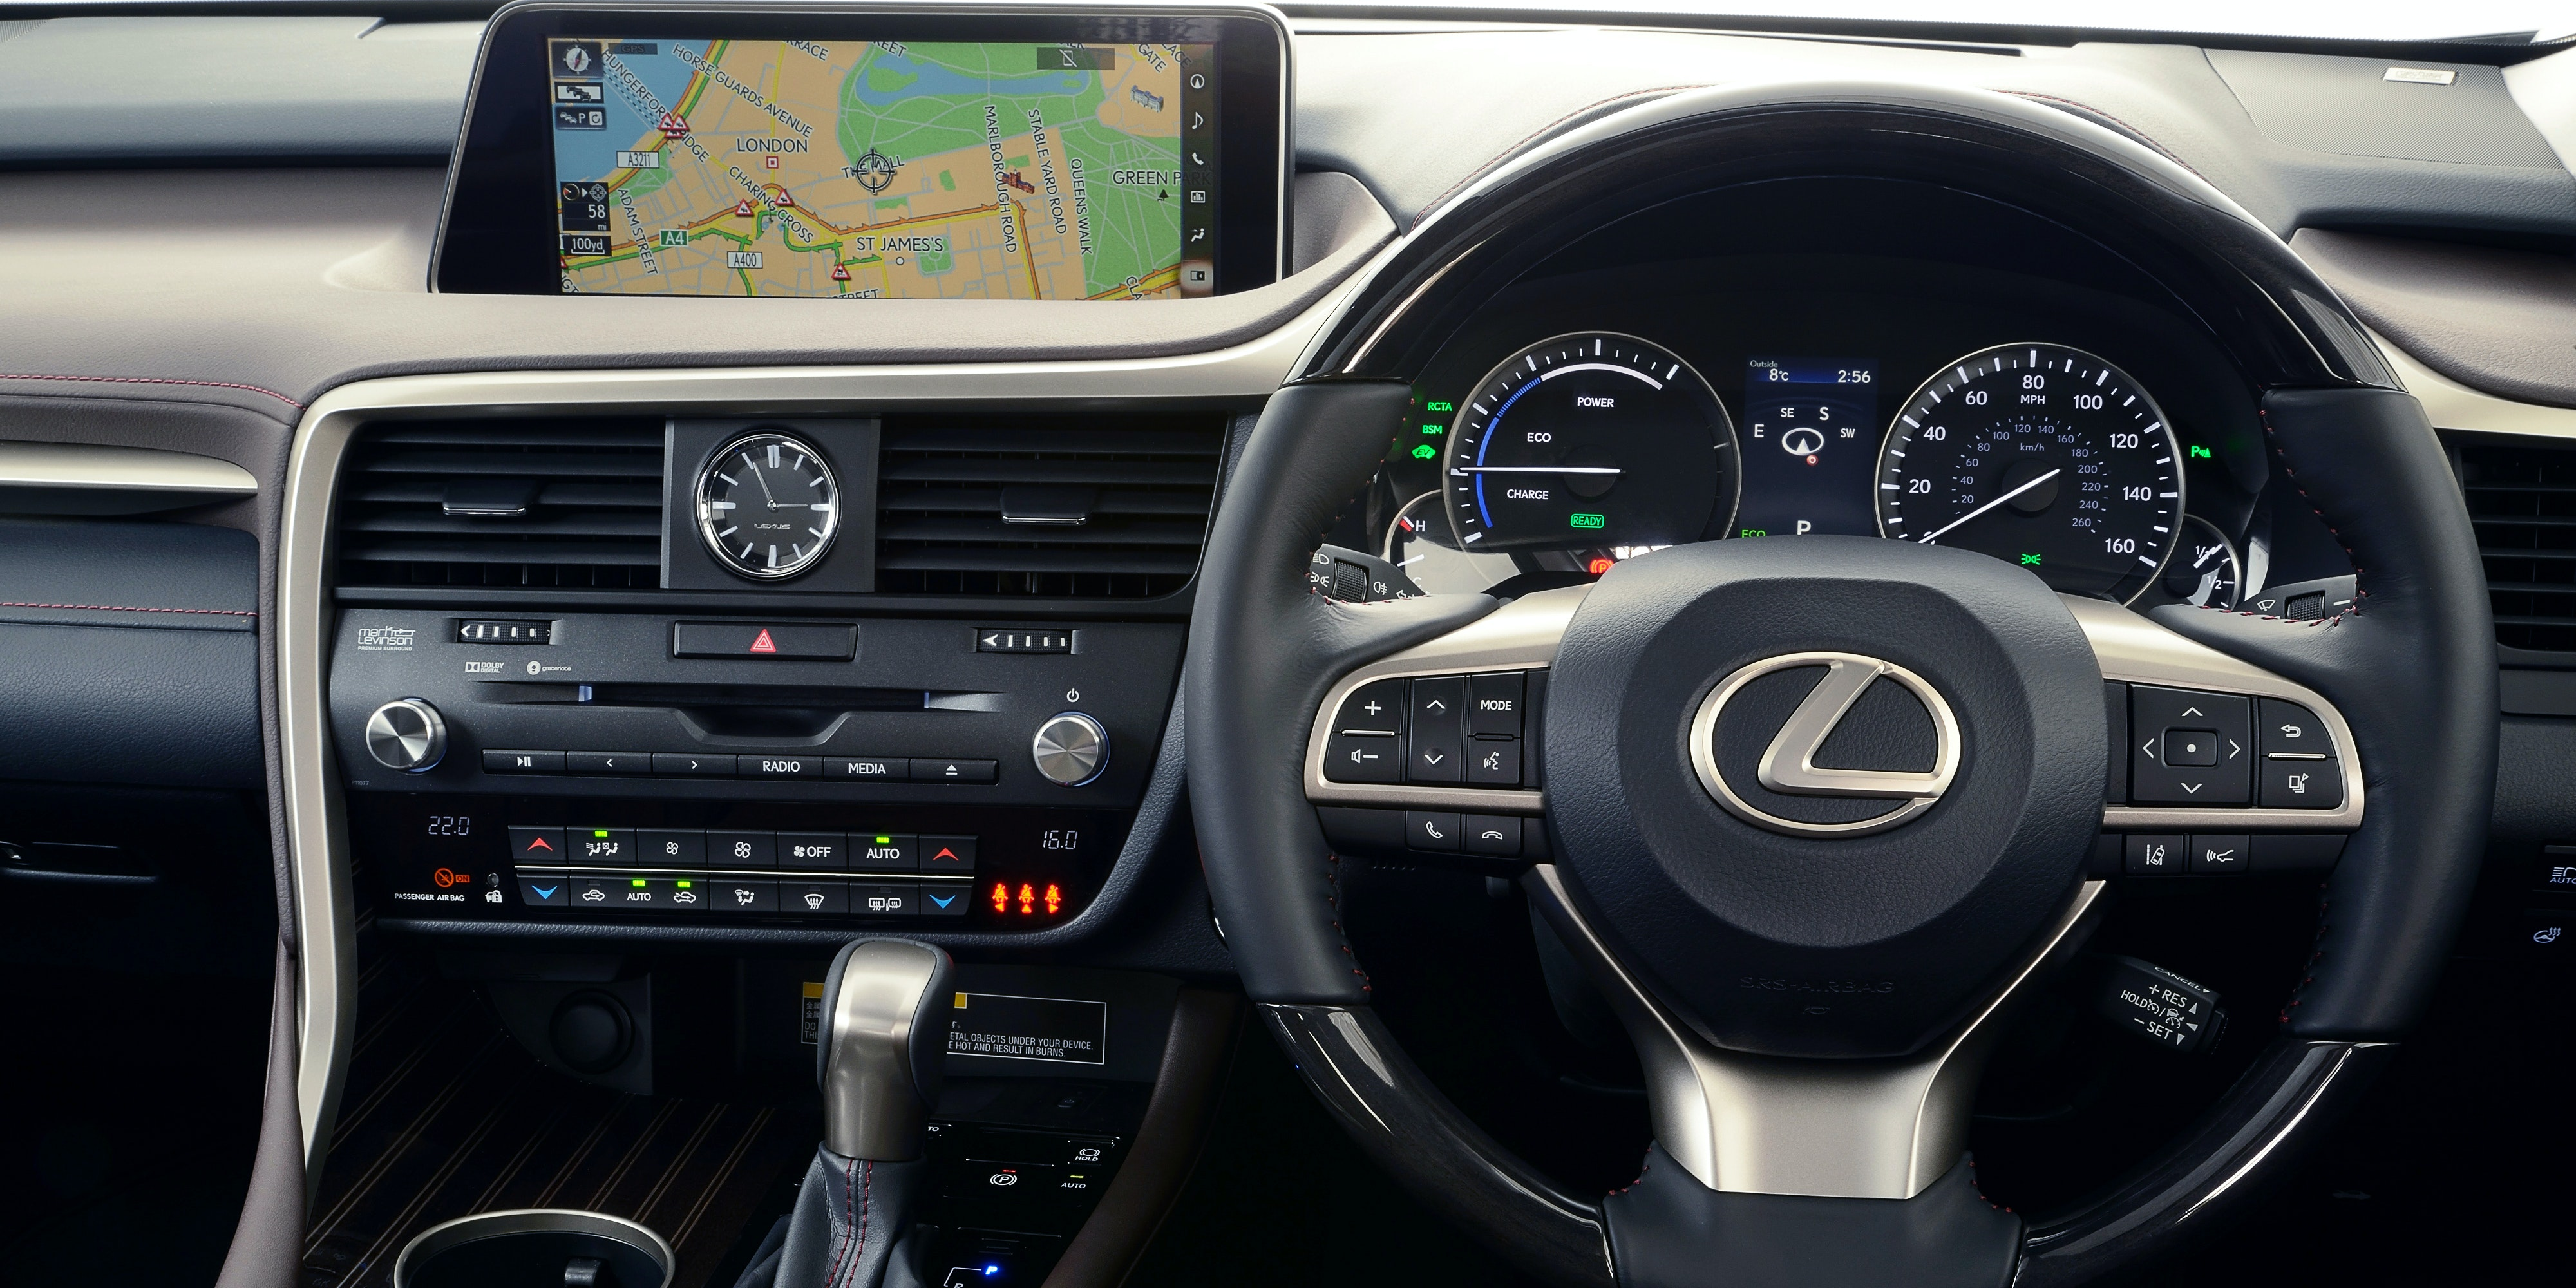 Elegant Lexus RX Interior And Infotainment | Carwow